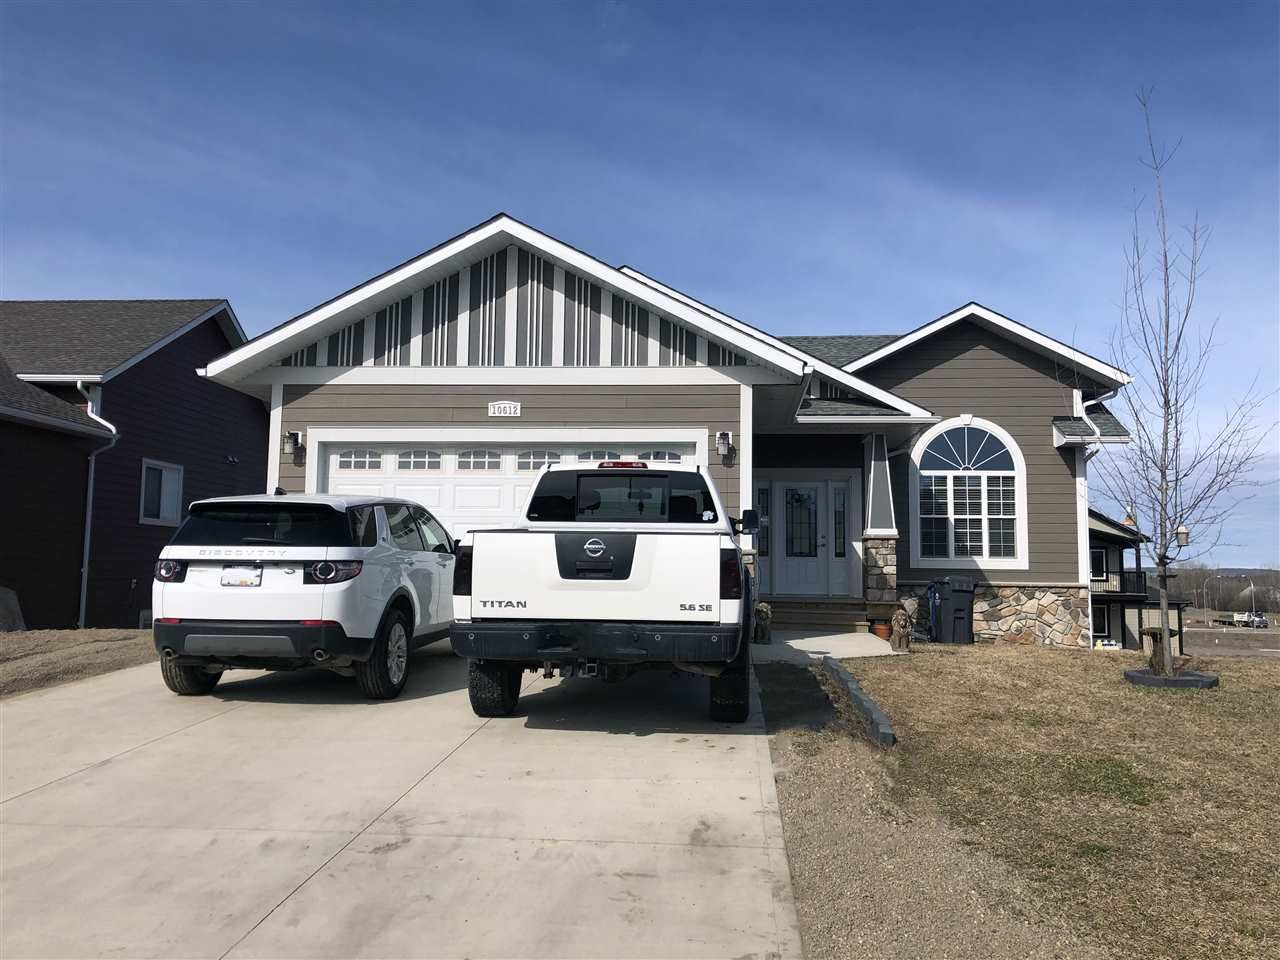 Main Photo: 10612 109A STREET in : Fort St. John - City NW House for sale : MLS®# R2347982